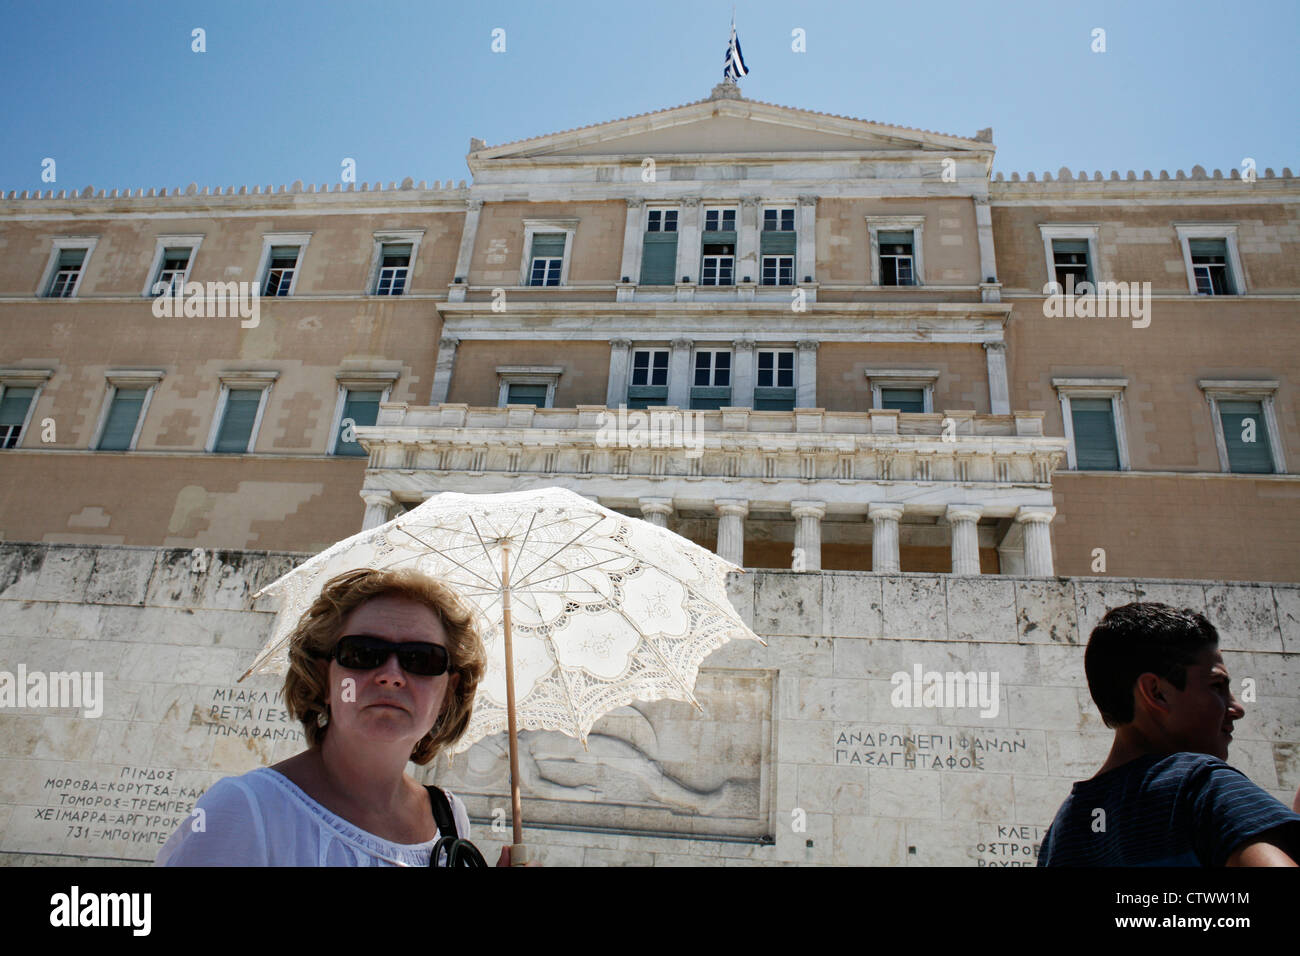 Heat wave in Athens. Tourist protected from the sun with an umbrella in front of Greek Parliament. Syntagma Sq, - Stock Image